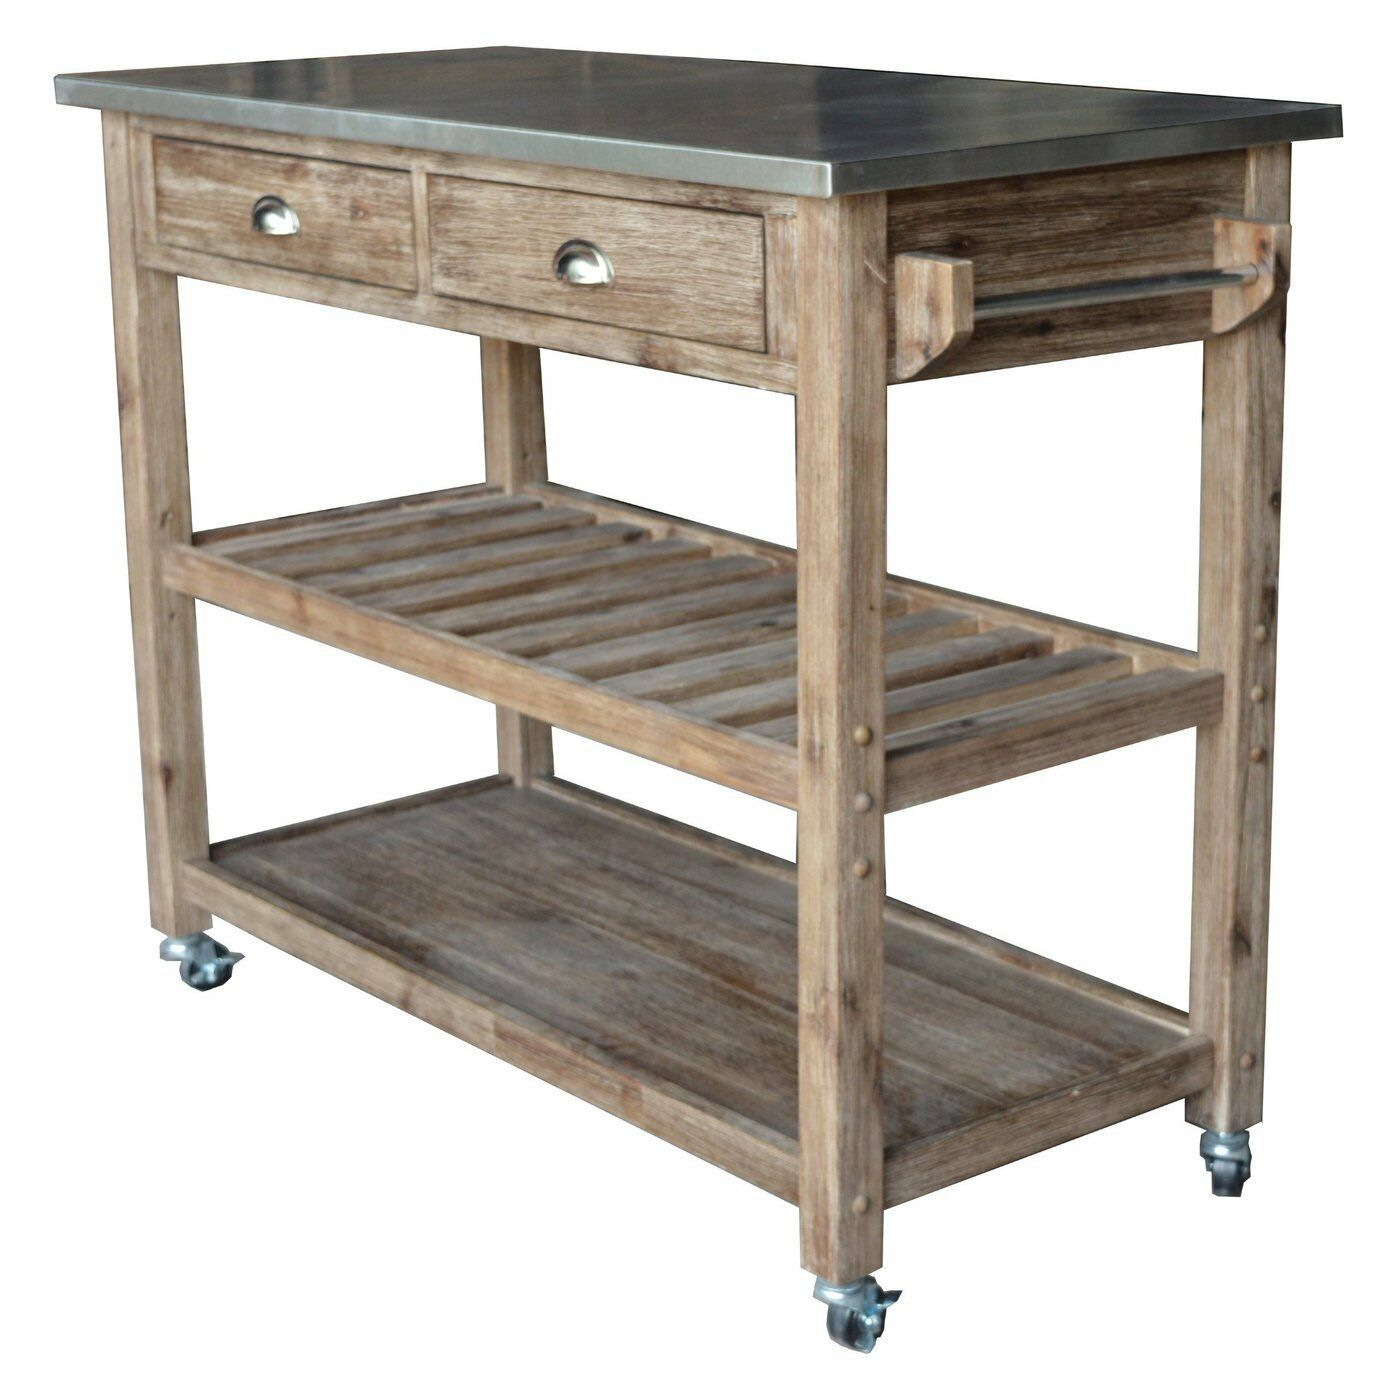 island cart kitchen modern kitchen island storage cart dining portable wheels bar mobile rustic wood ebay 3910